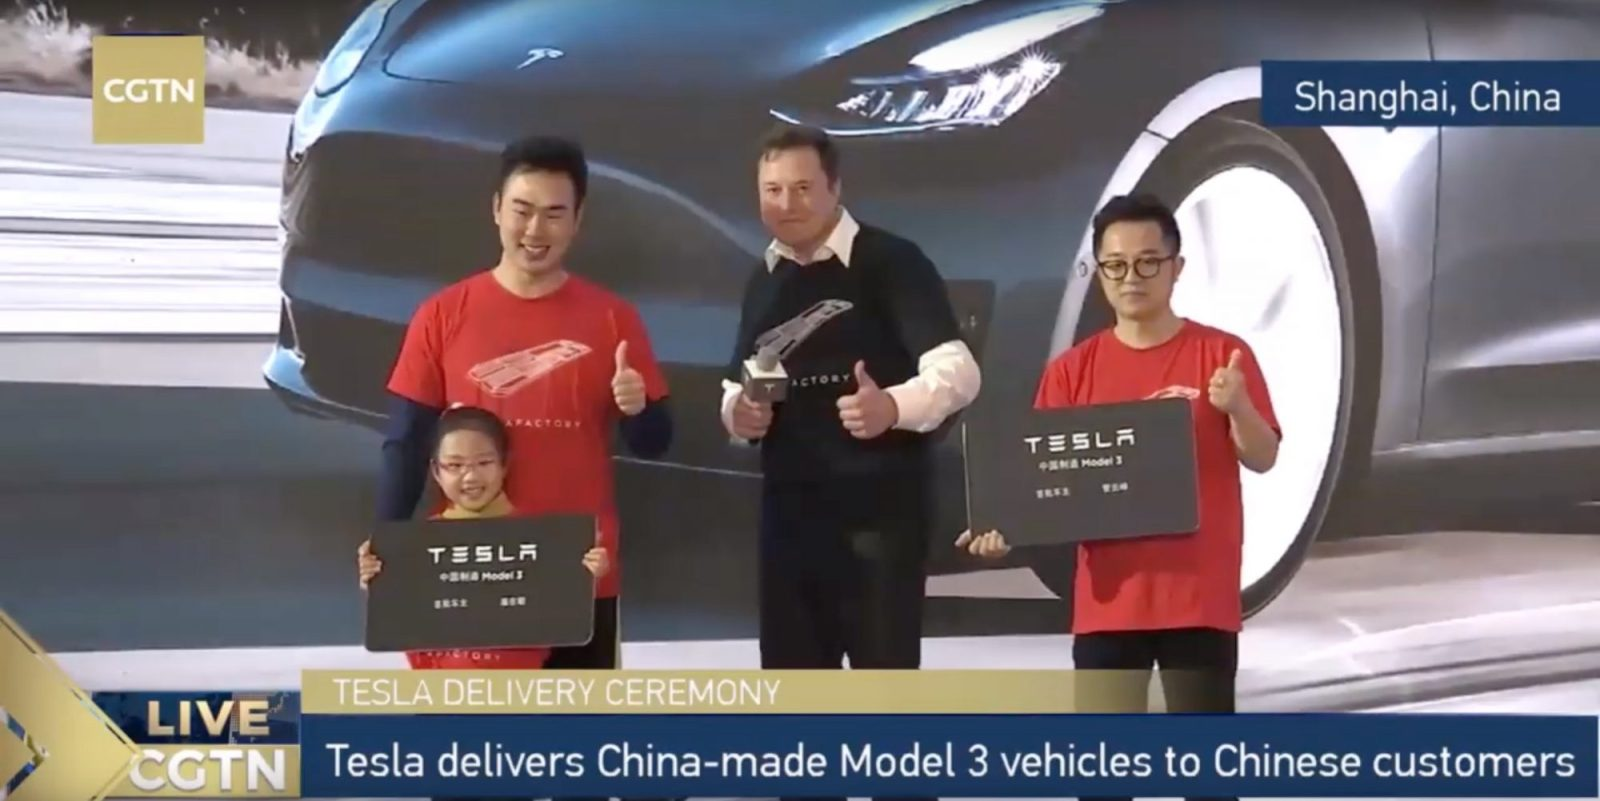 Elon Musk: Tesla will design an electric car in China for global market